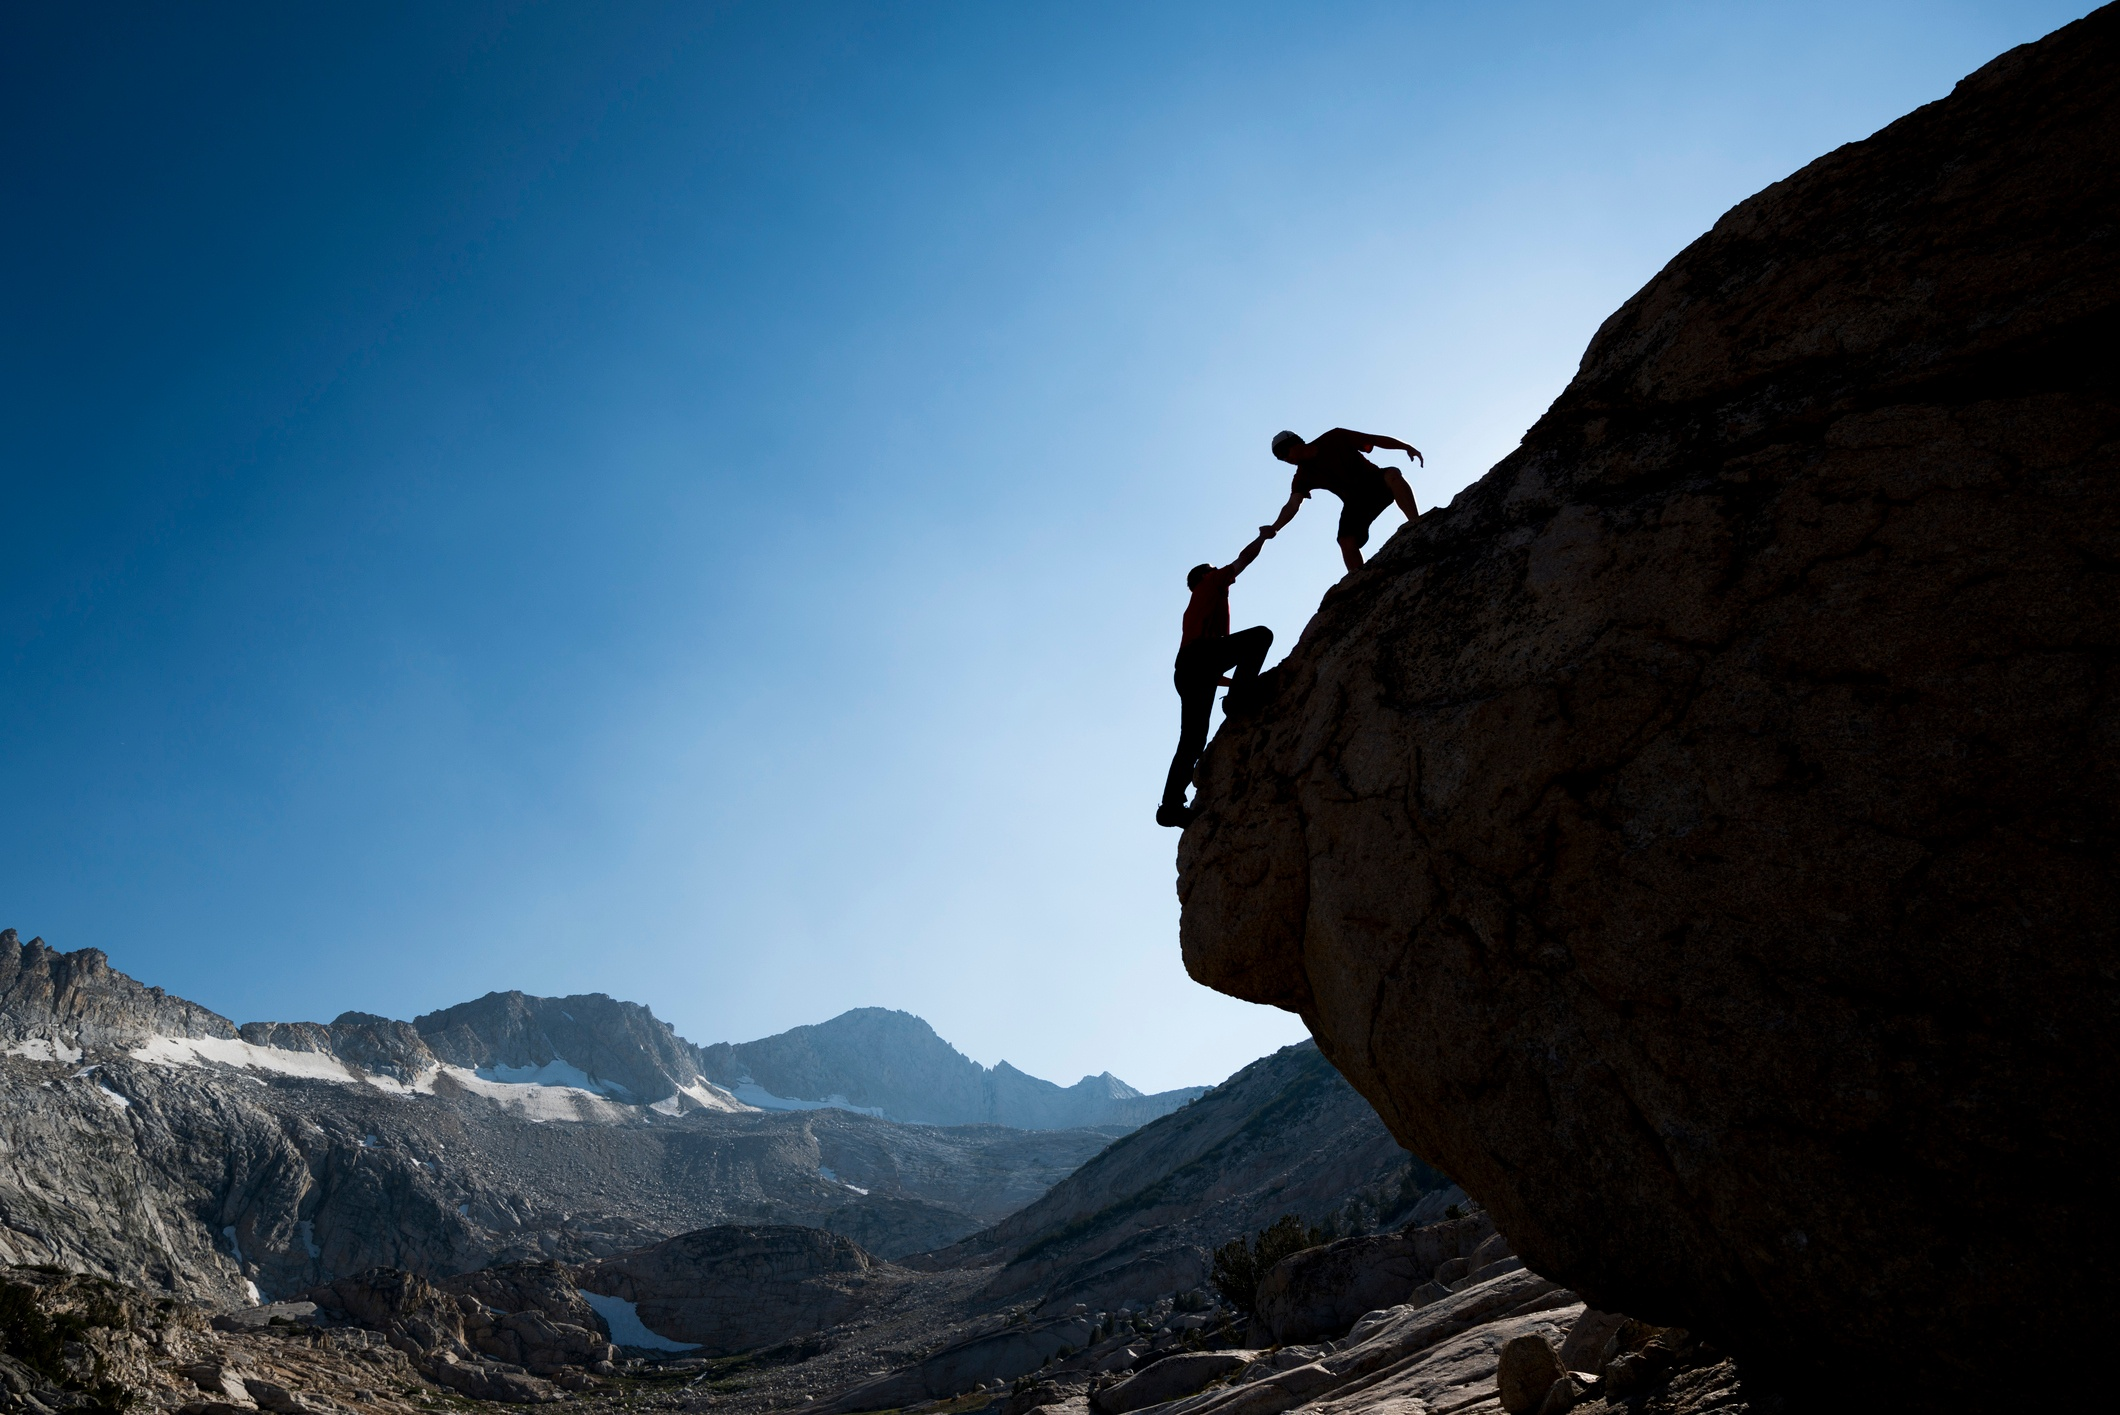 Helping Hand on a Mountain